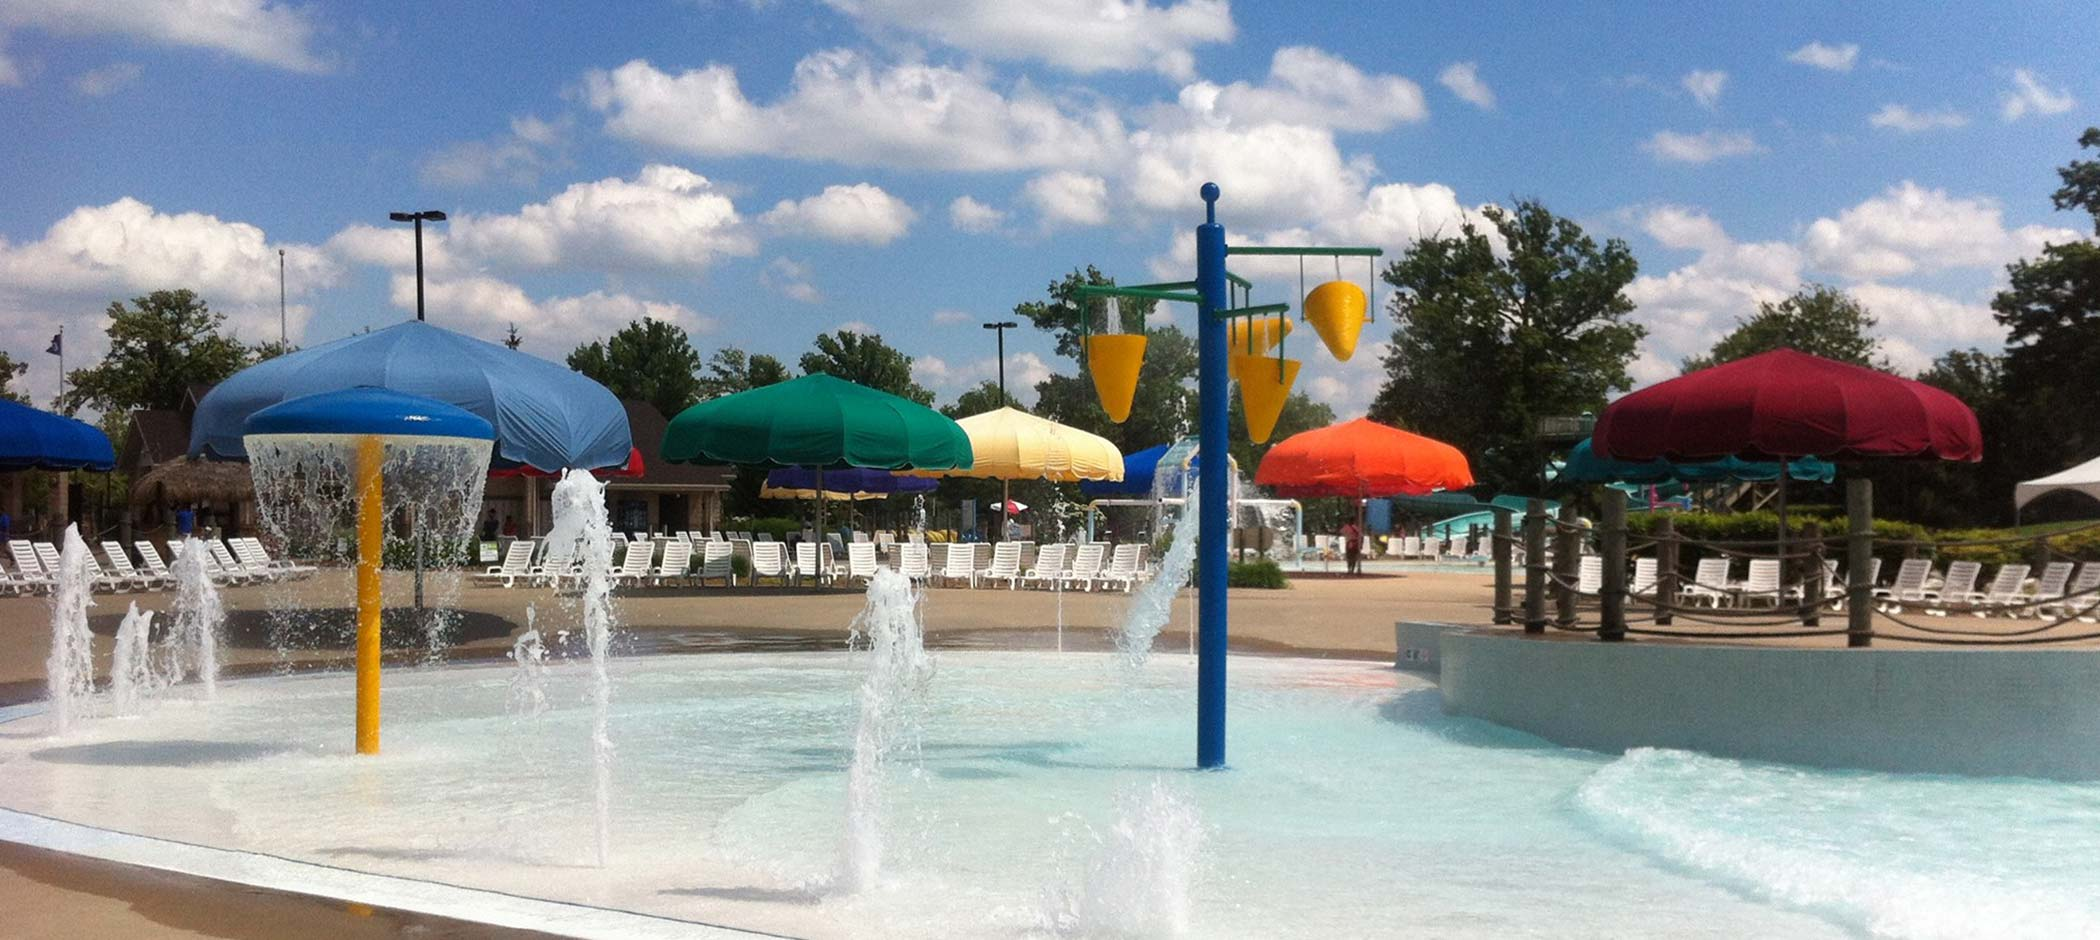 Wayne County Family Aquatic Center